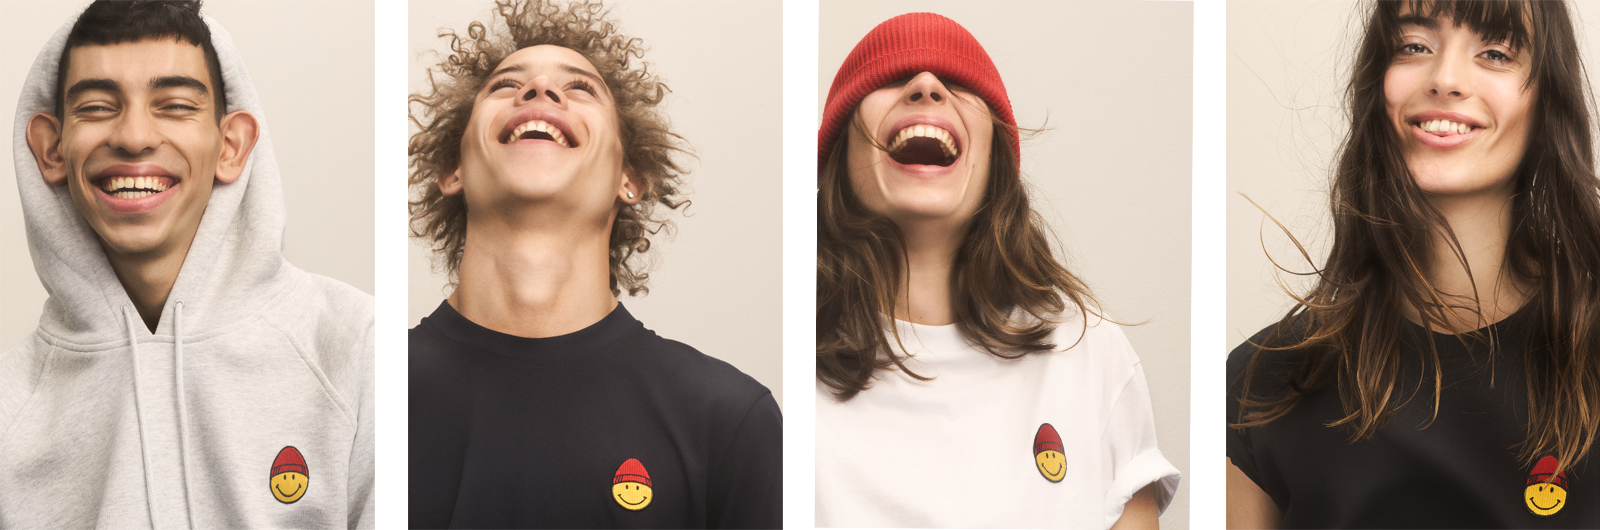 The New AMI x SMILEY Capsule Collection Will Make You Happy